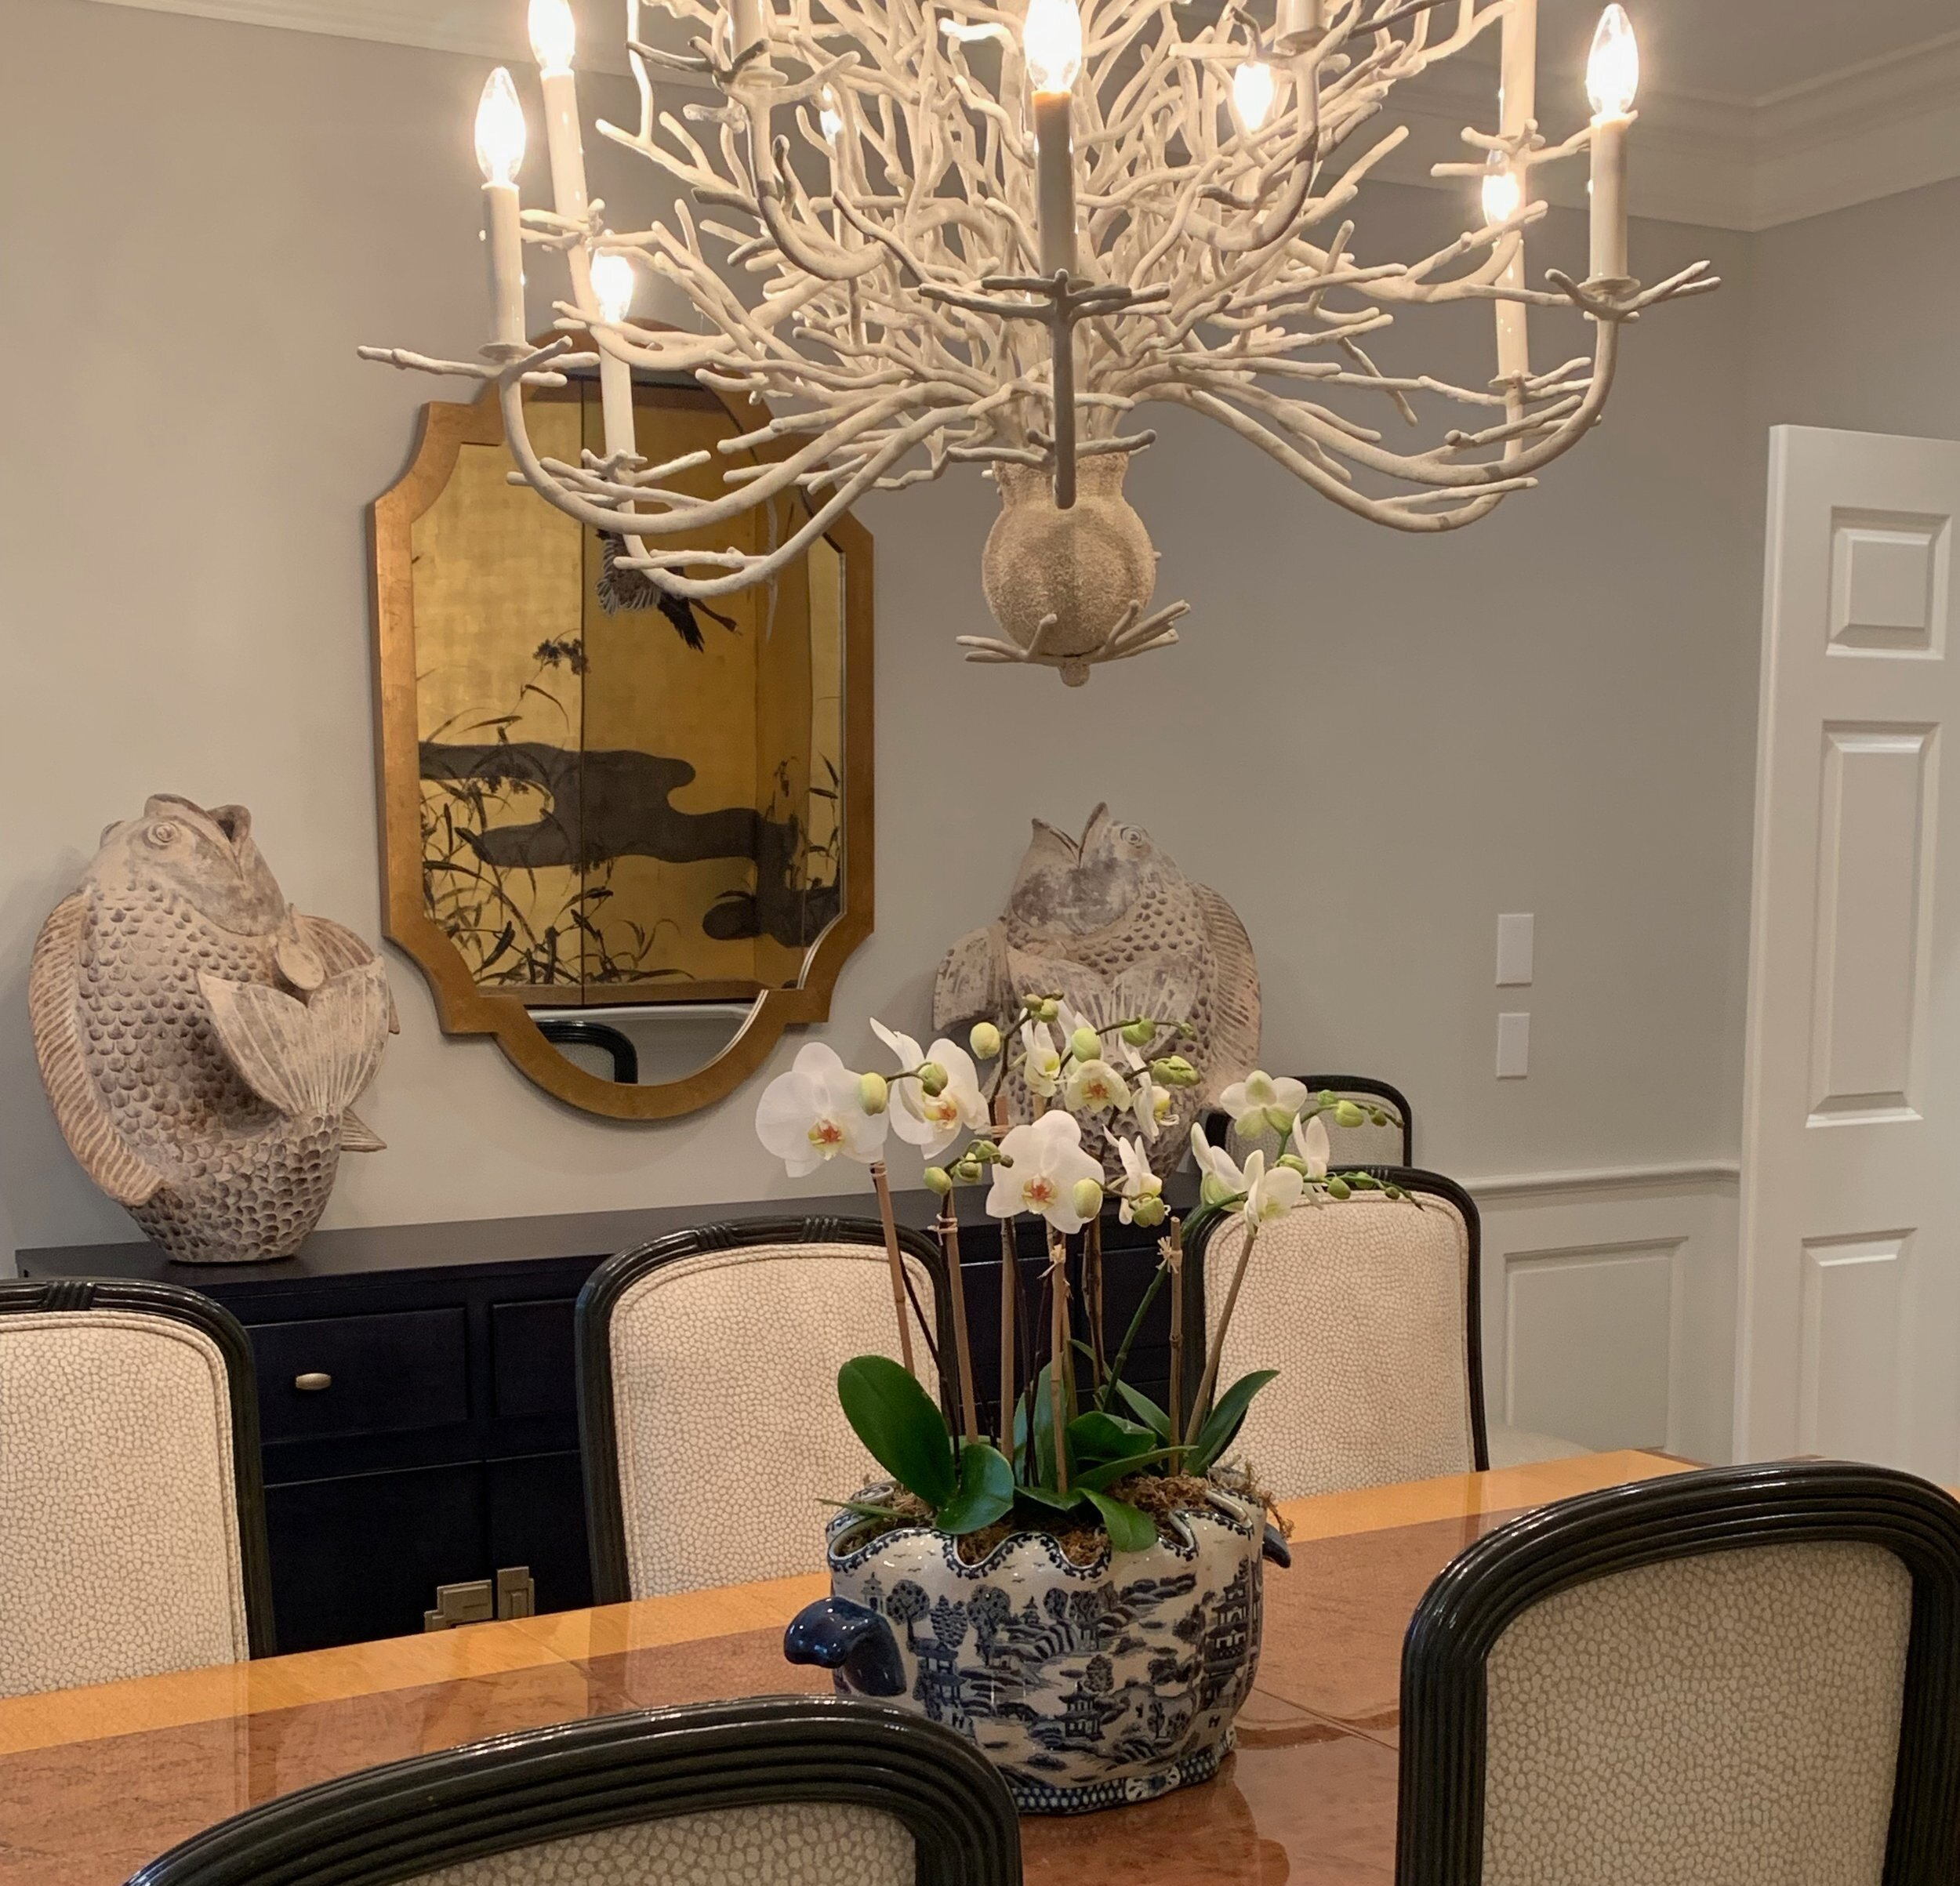 Quogue-dining-room-after.jpeg